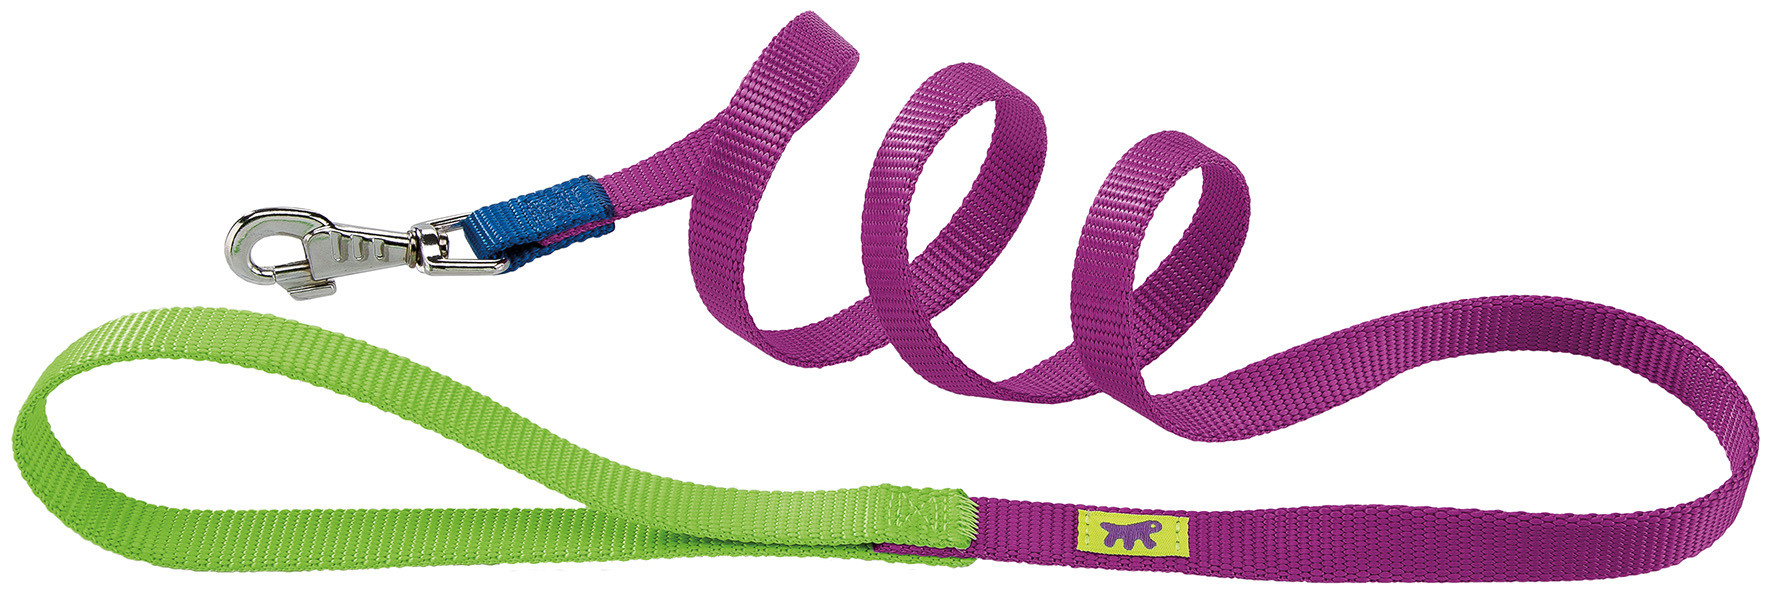 Guia de Nylon Ferplast Club Colours - Grande - Roxo